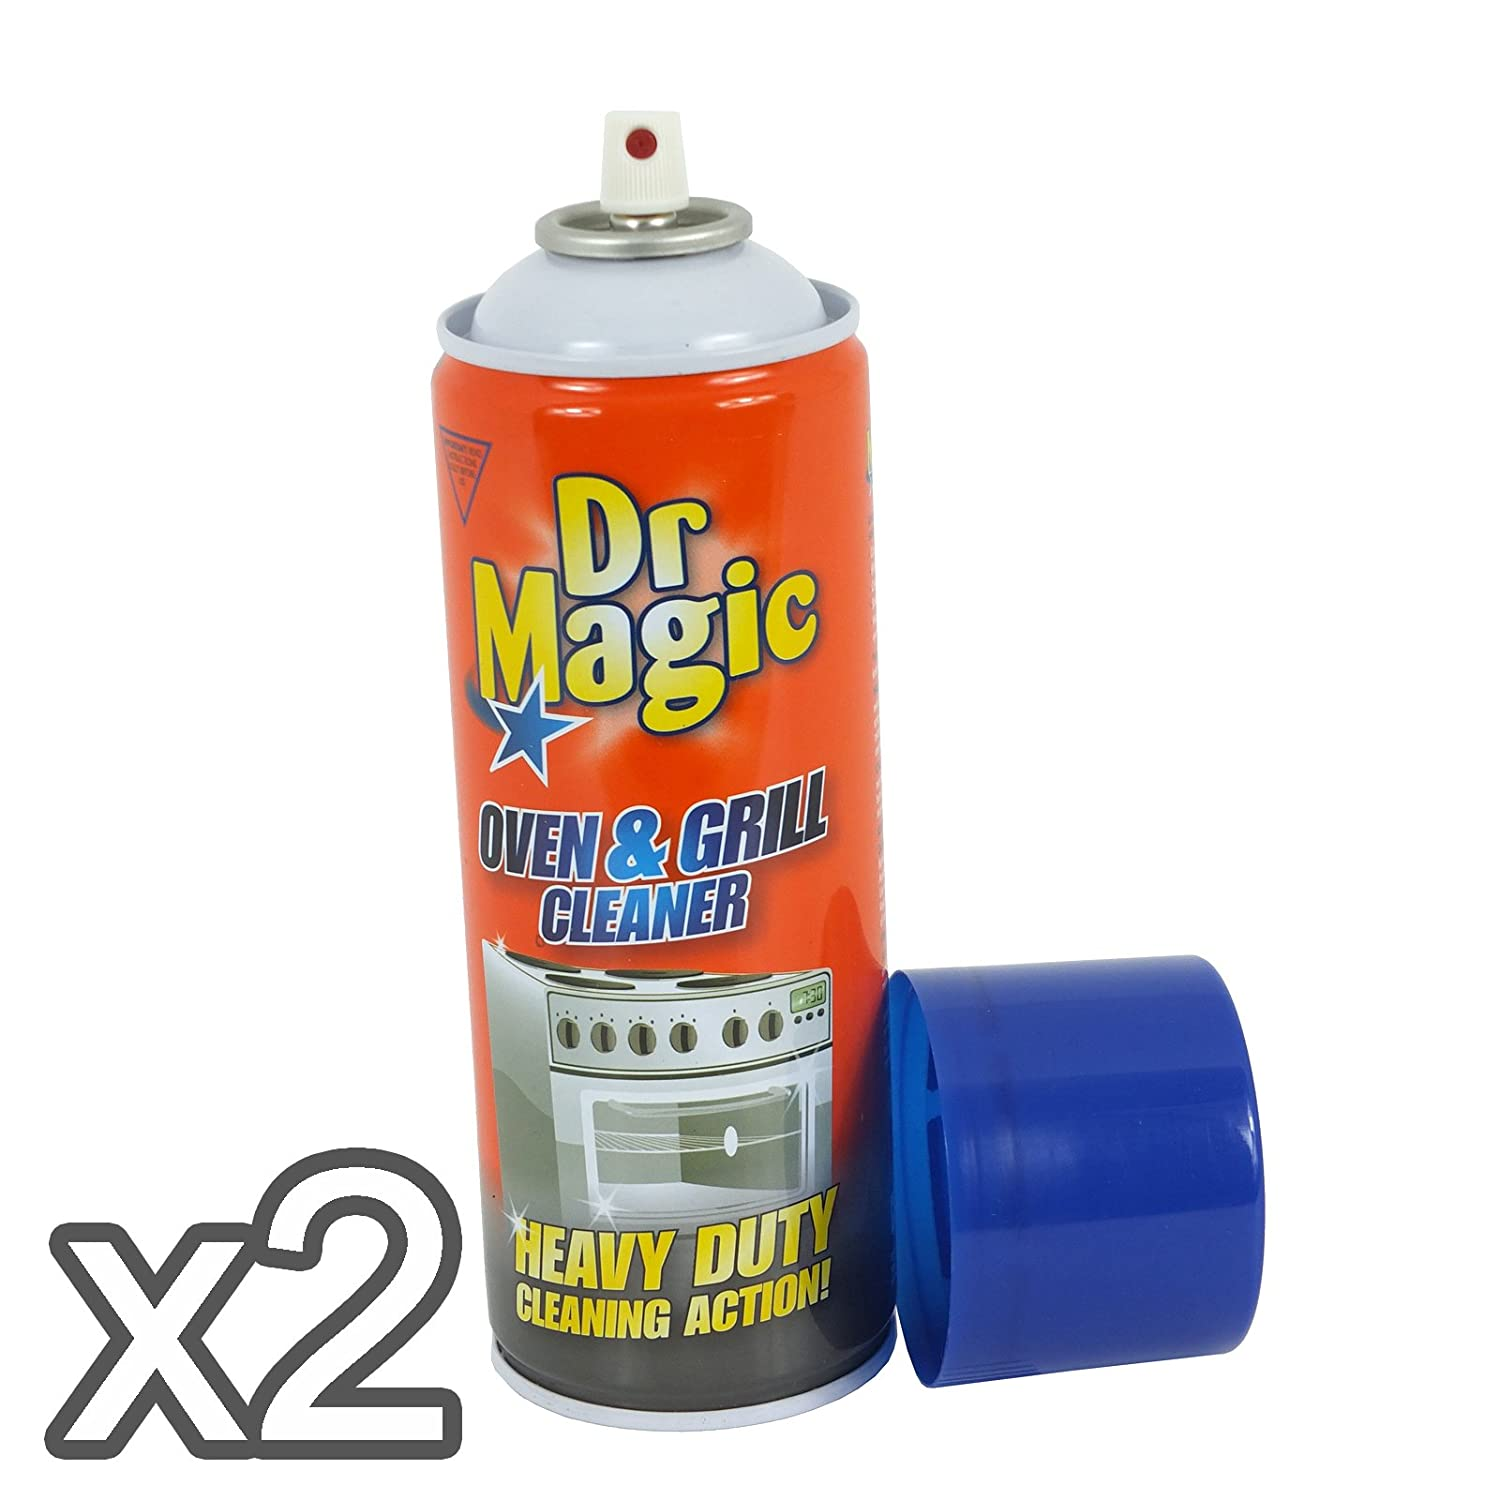 Dr Magic Oven & Grill Cleaner (Pack of 2)